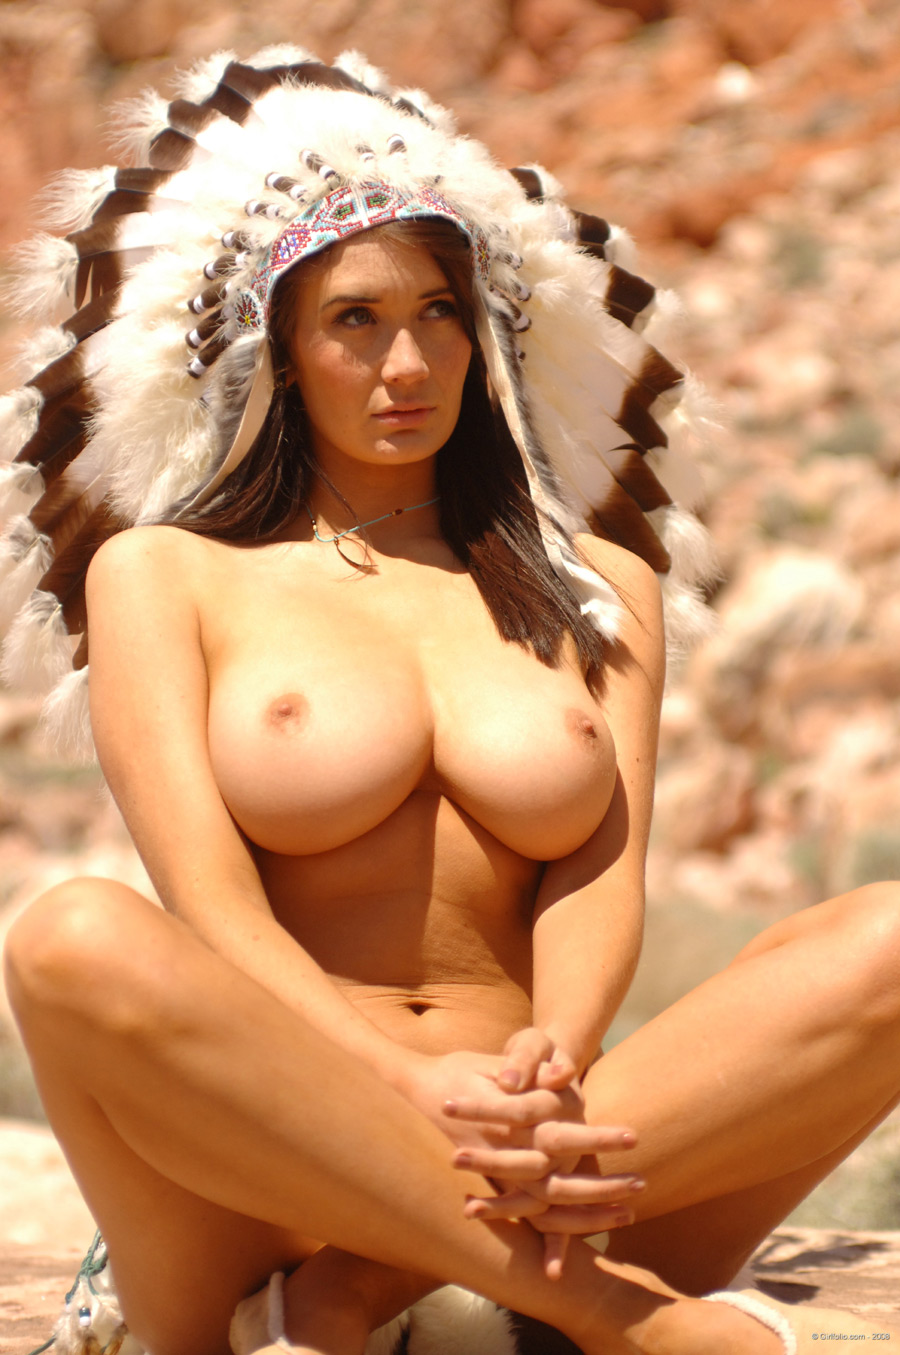 Indian topless woman, padme amidala buttnecked pituers